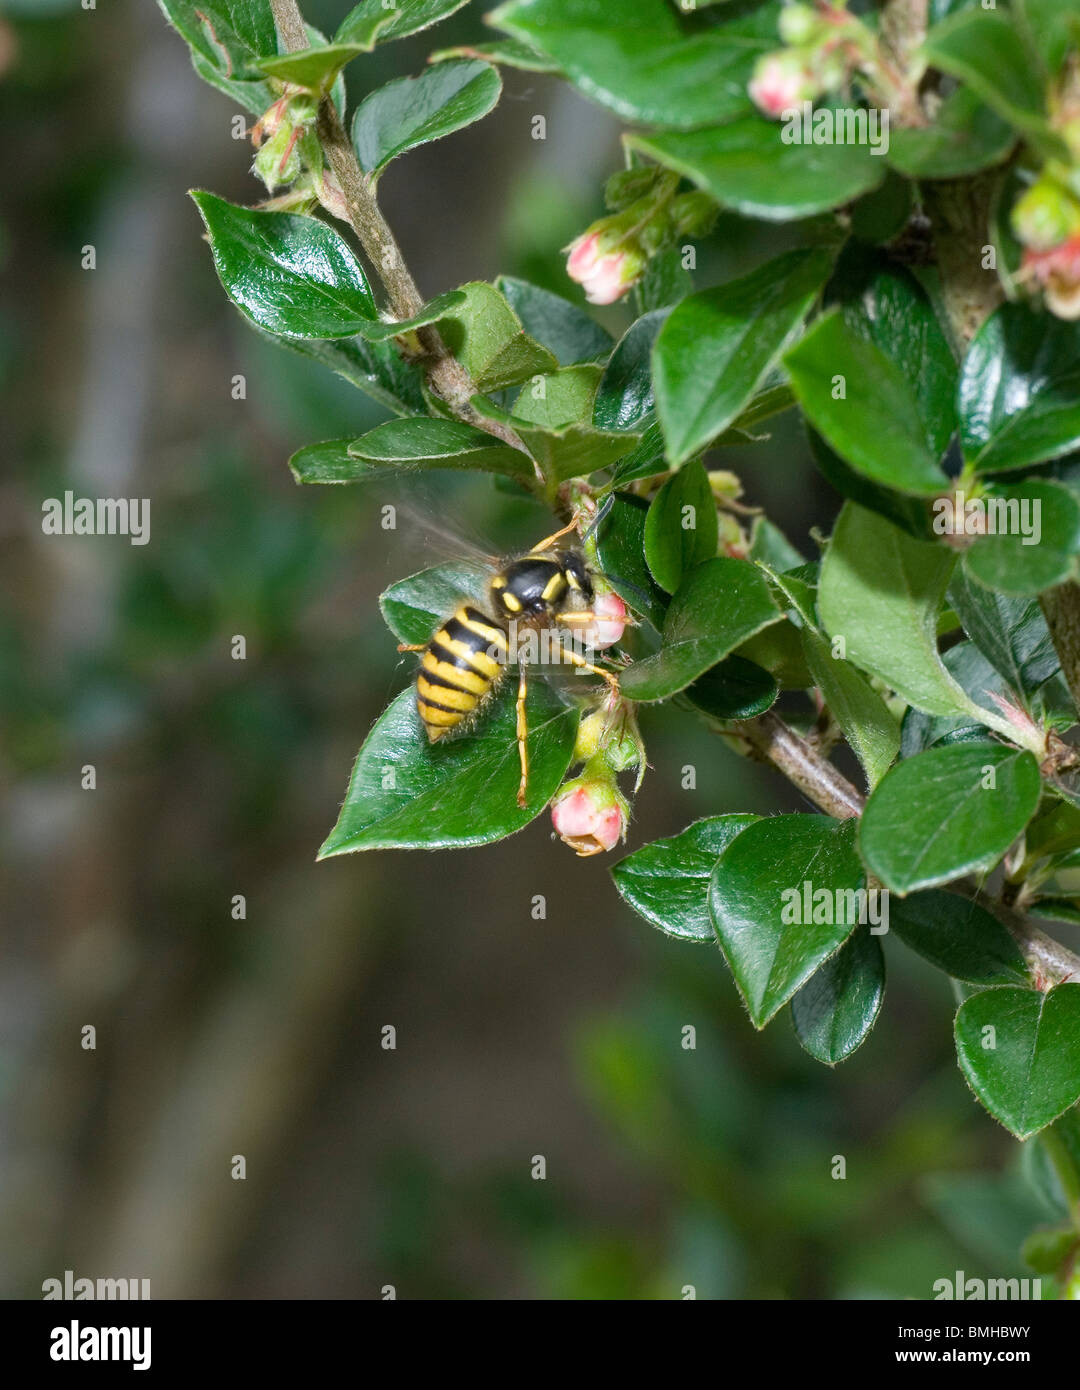 Wasp feeding on nectar - Stock Image